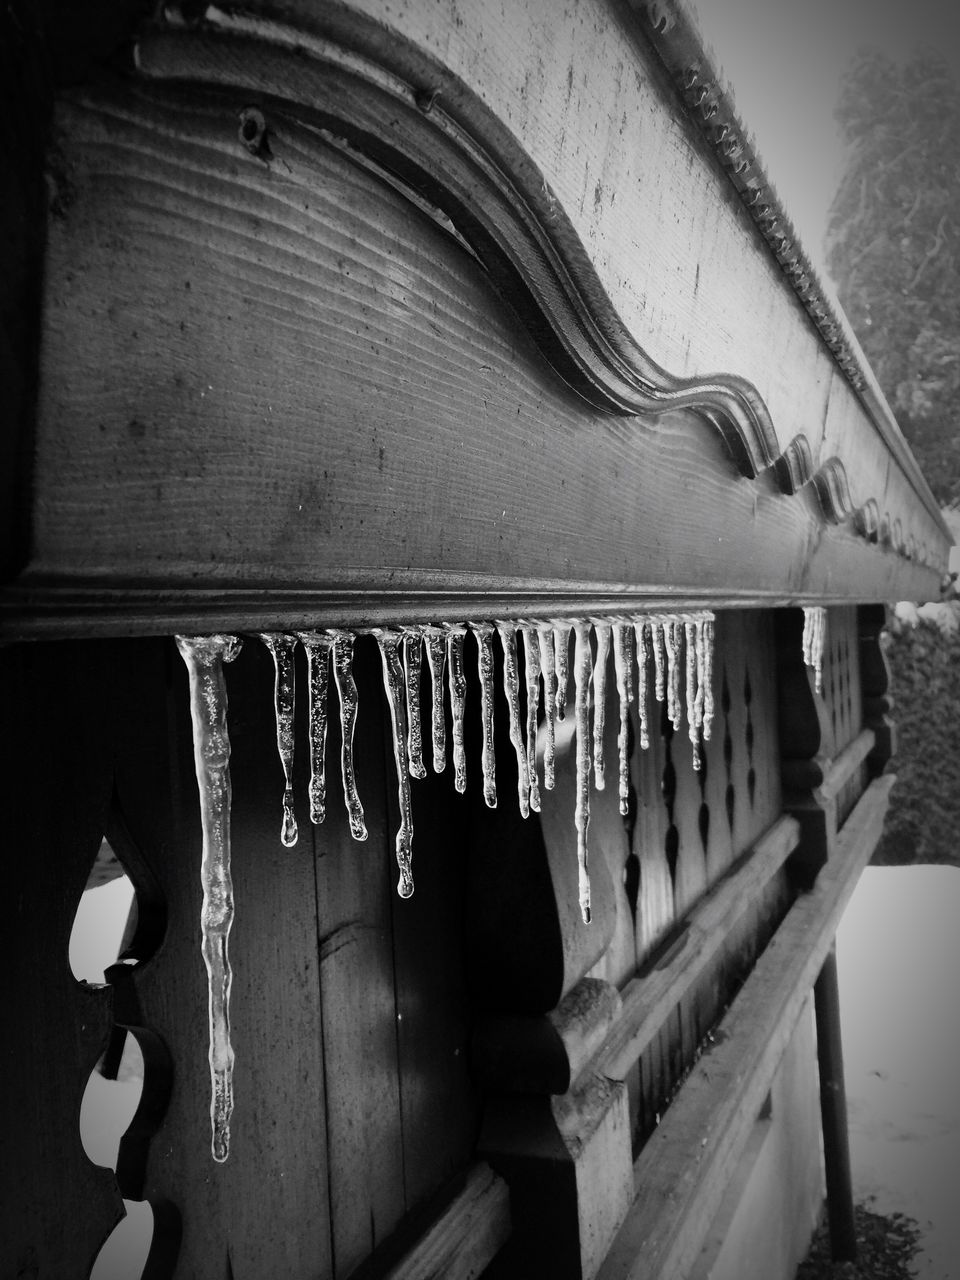 hanging, winter, cold temperature, no people, wood - material, built structure, snow, outdoors, day, roof, close-up, architecture, nature, dripping